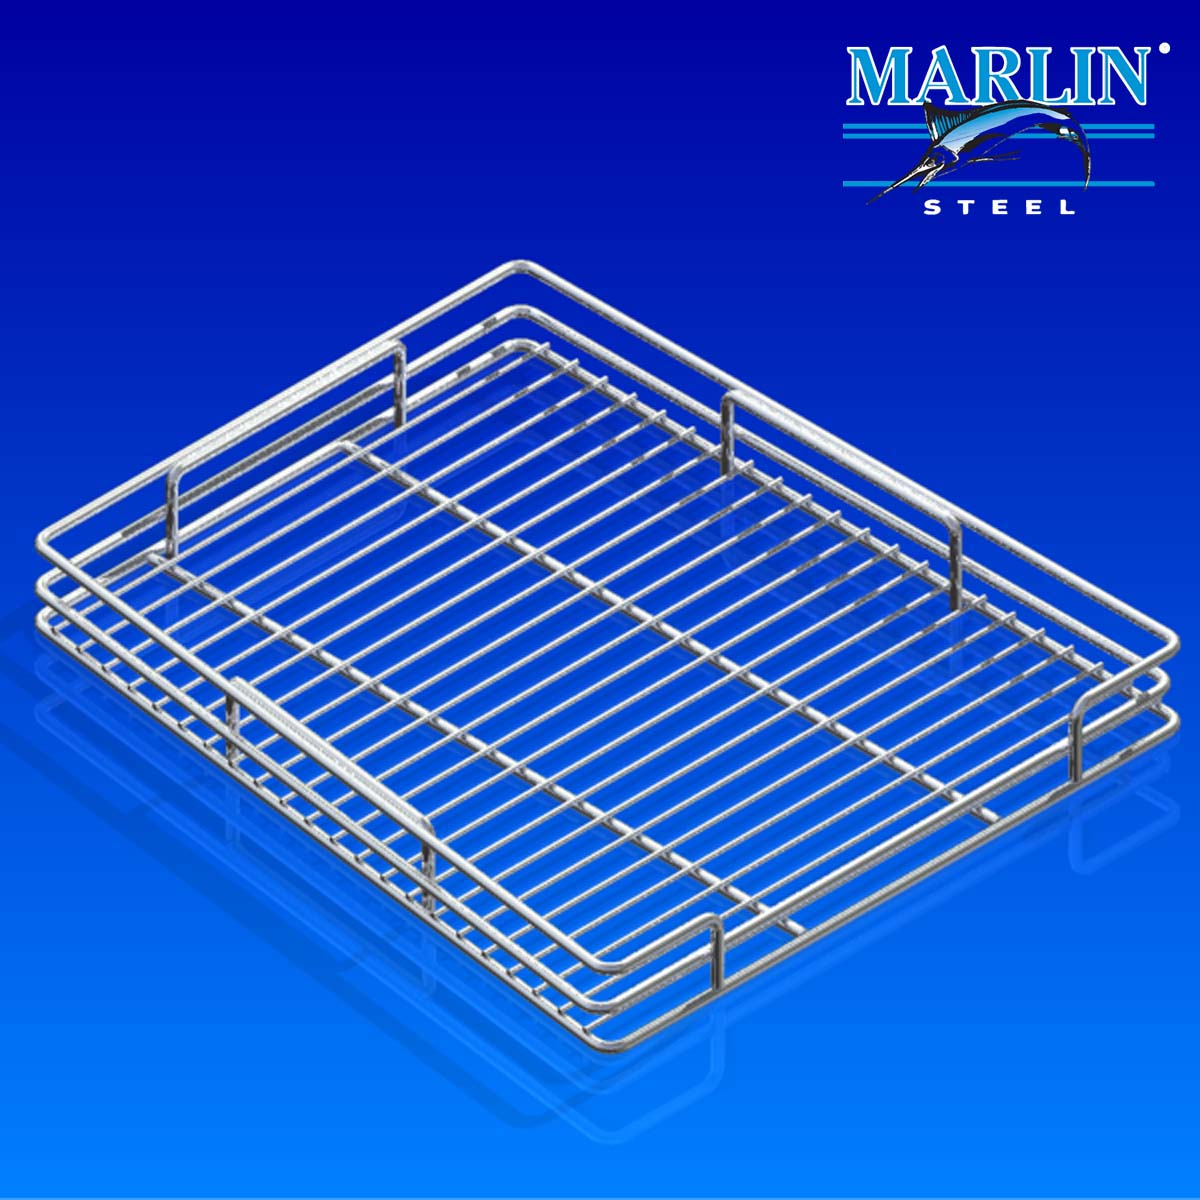 Marlin Steel Wire Basket 974002